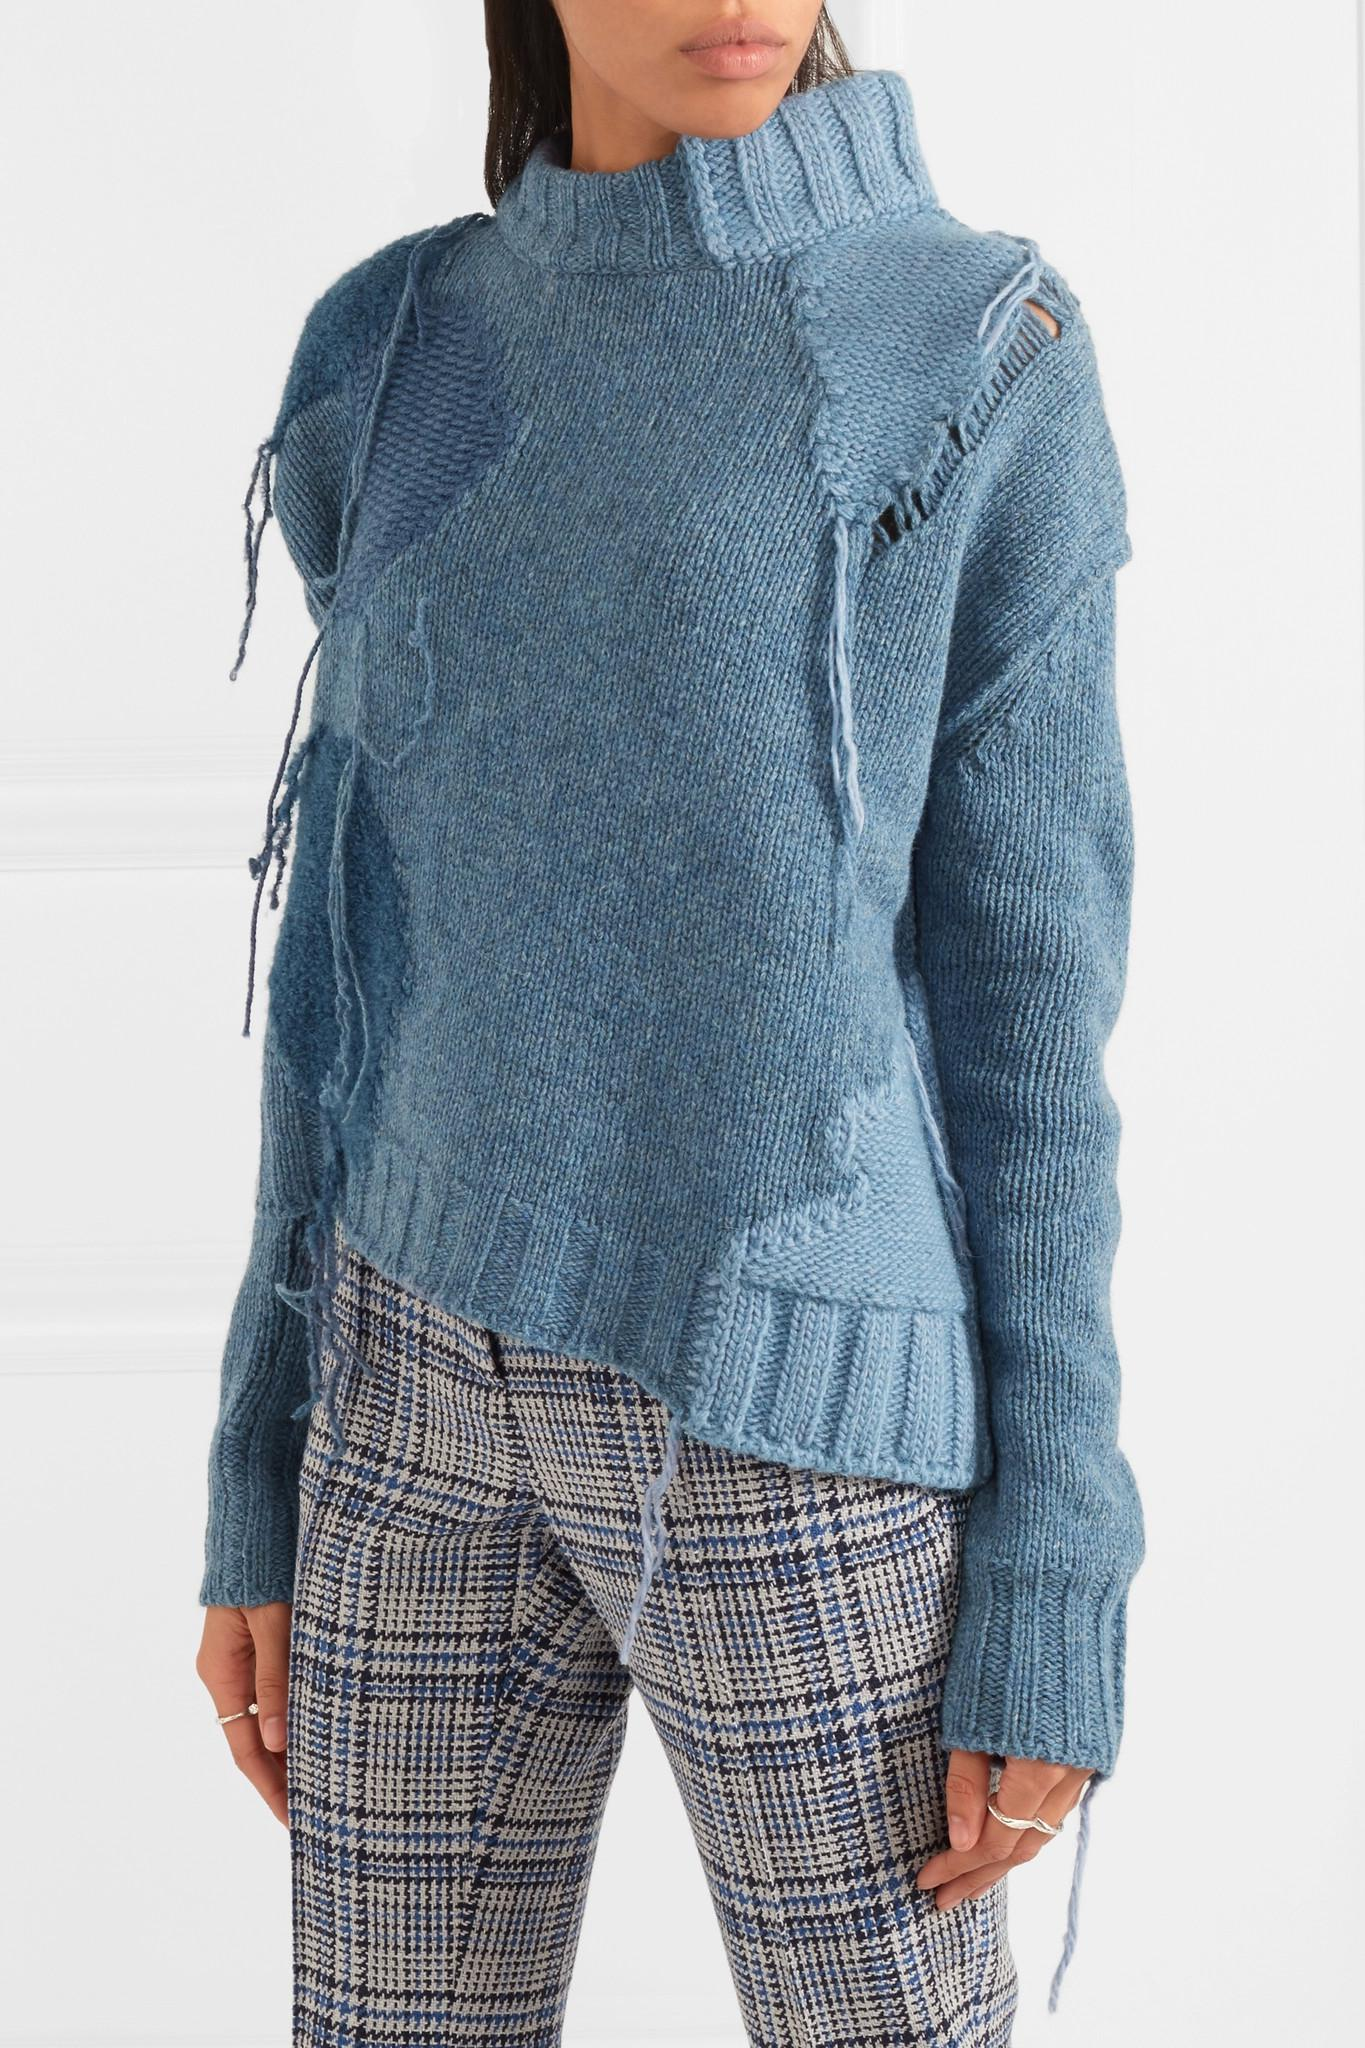 lyst acne ovira asymmetric patchwork wool blend sweater in blue. Black Bedroom Furniture Sets. Home Design Ideas